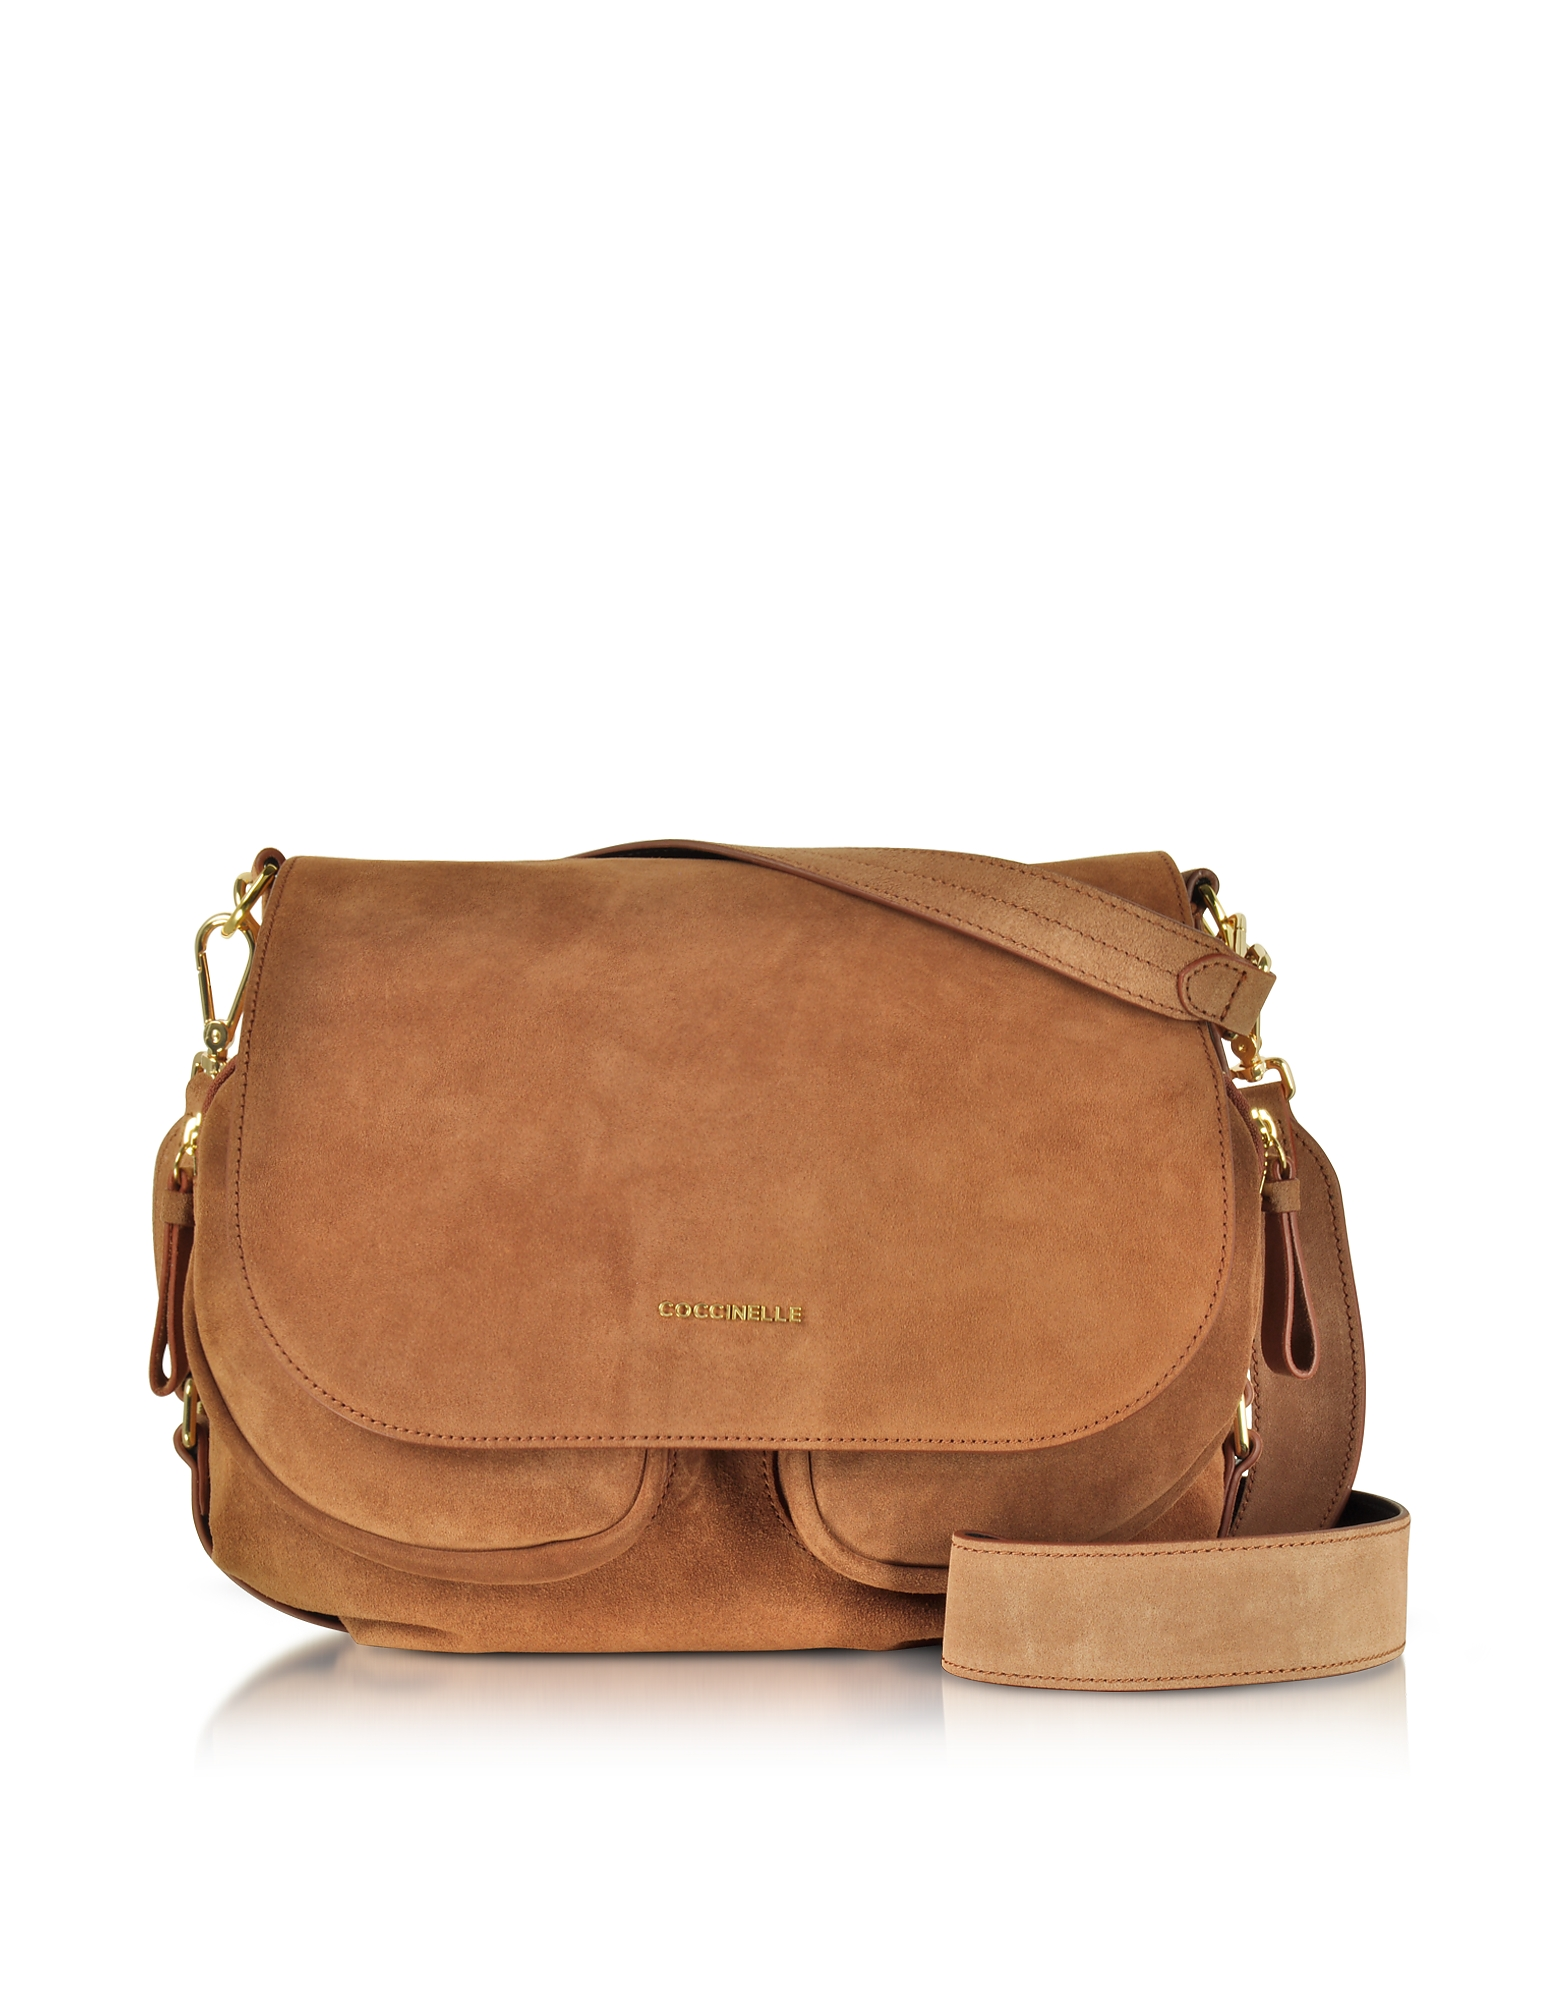 Coccinelle Handbags, Janine Suede Shoulder Bag